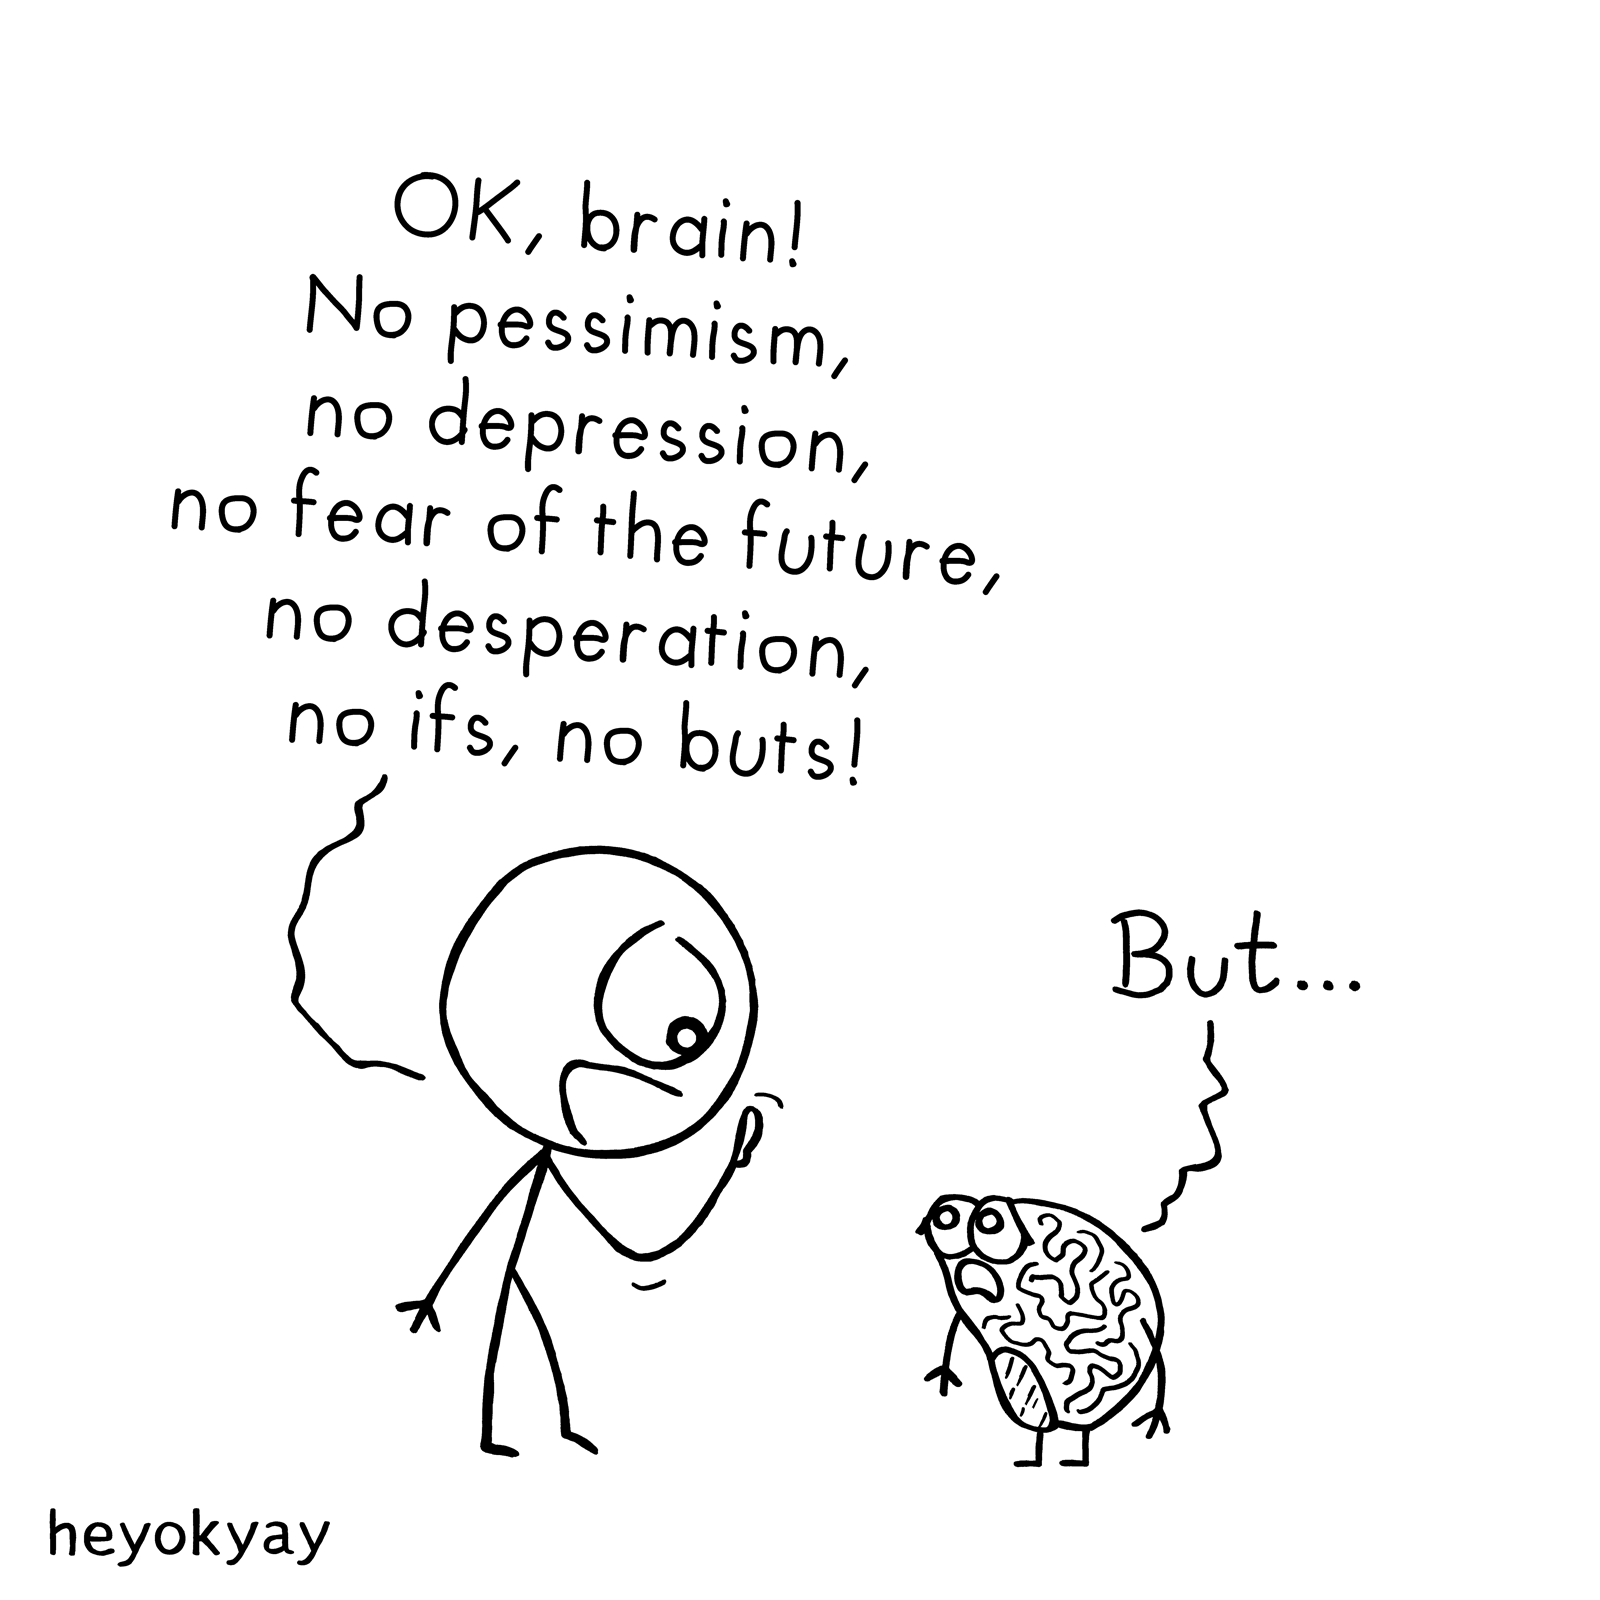 OK, Brain! heyokyay comic